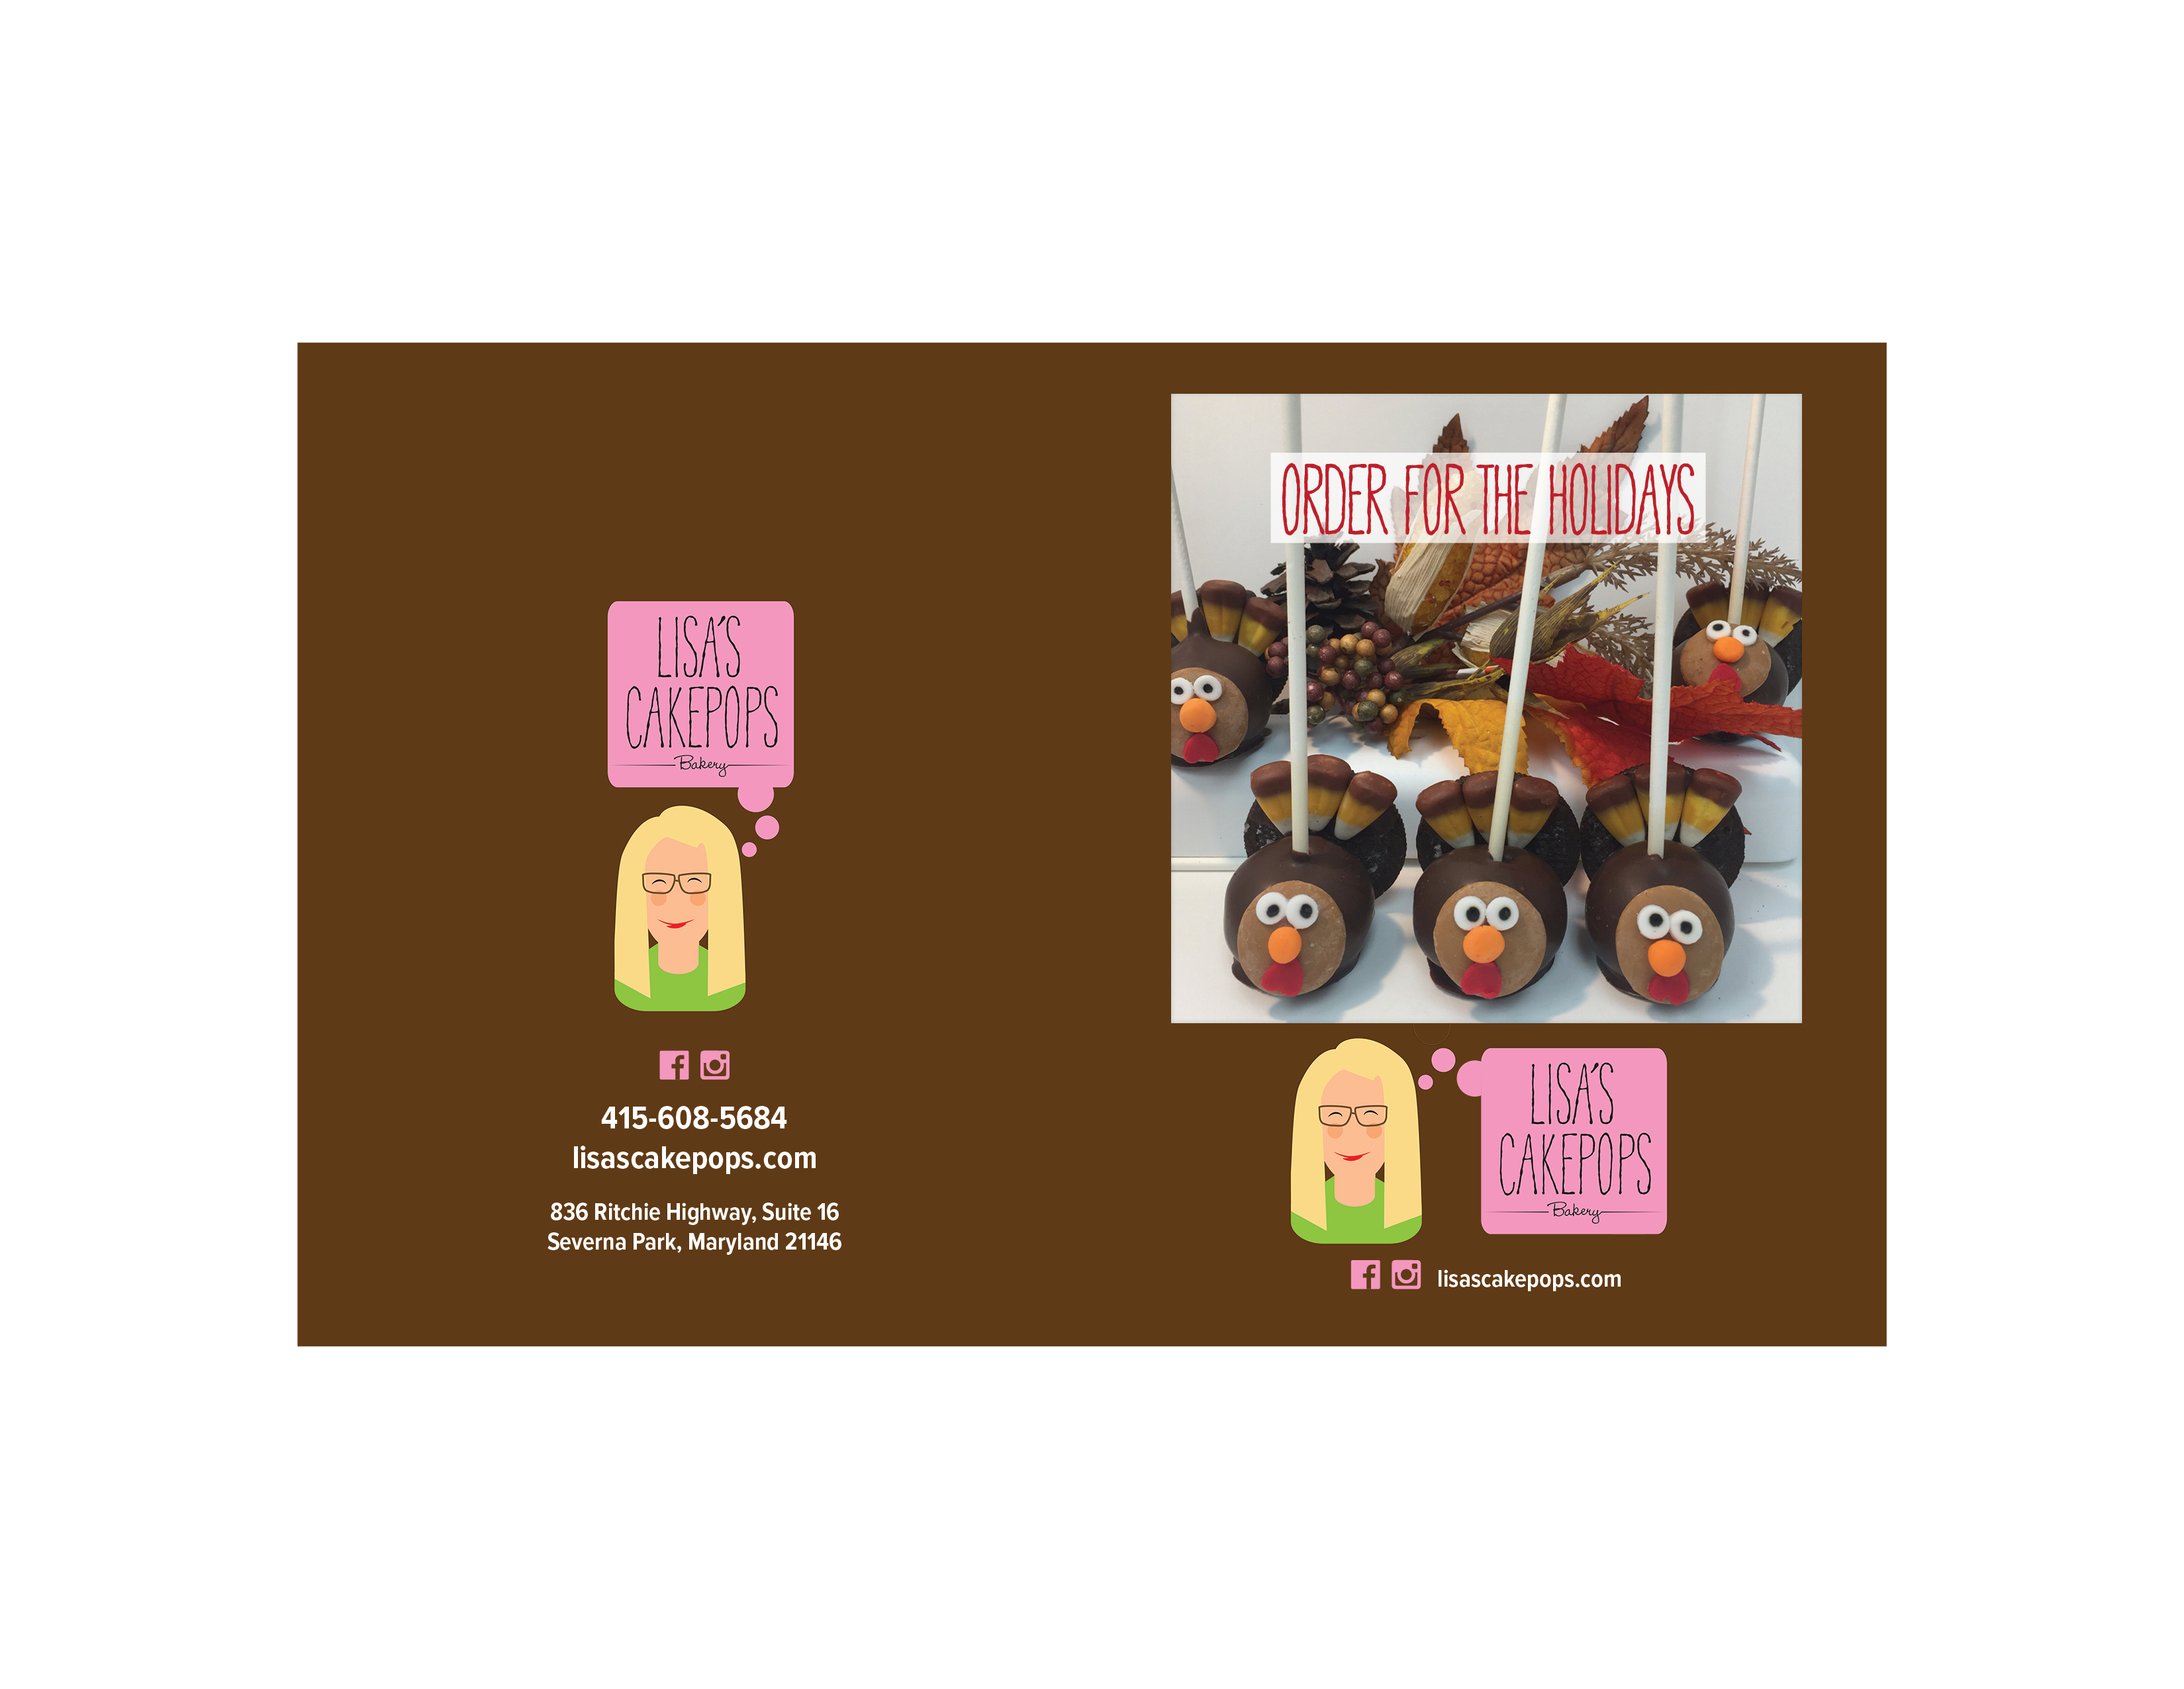 lisas-cakepops-holiday-brochure